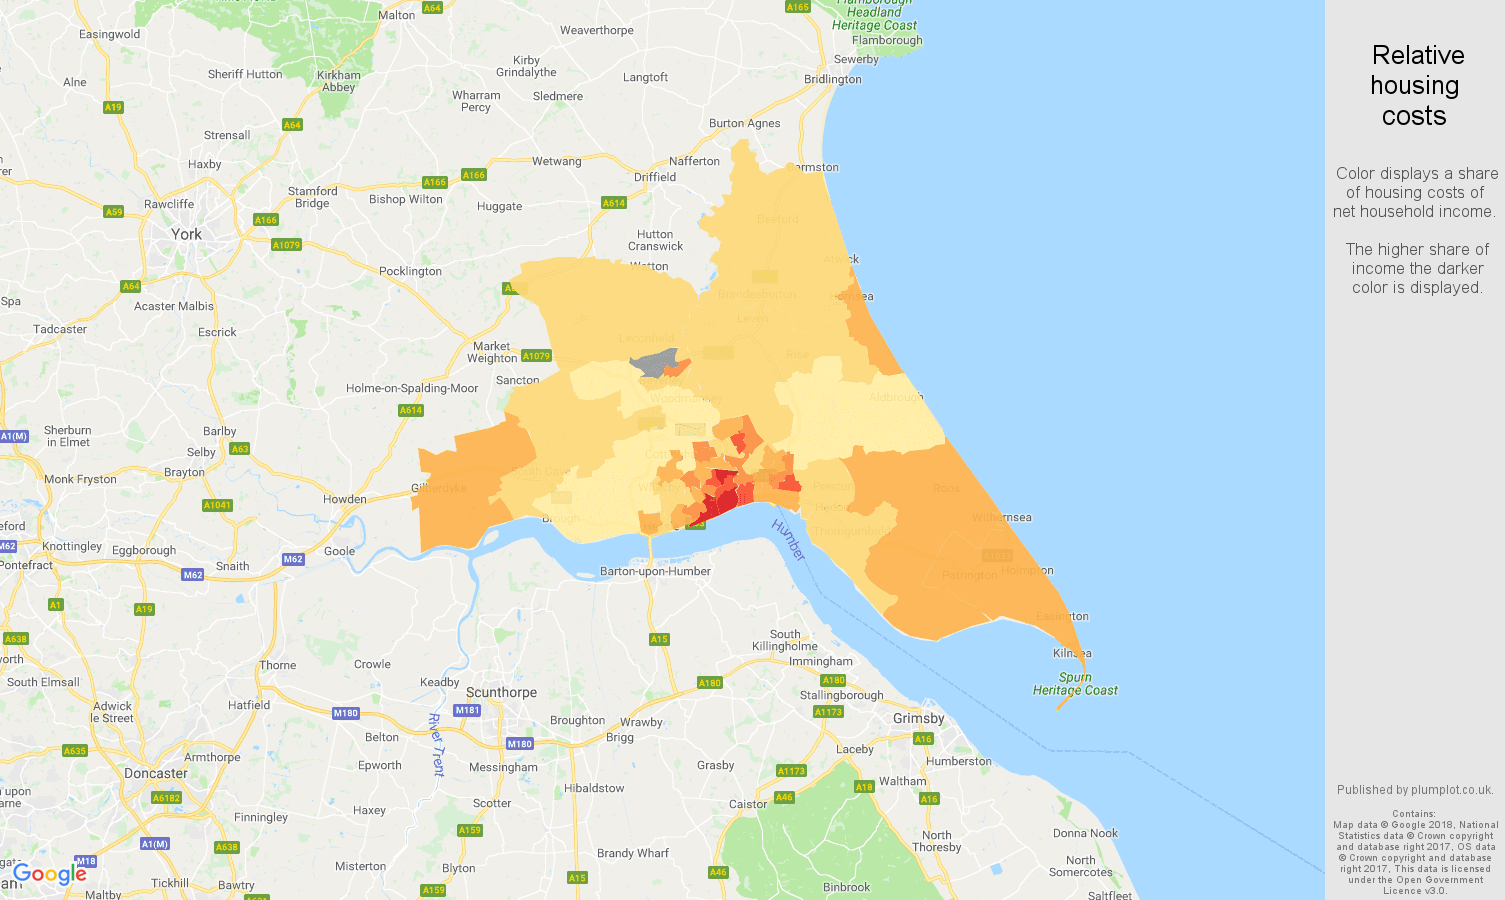 Hull relative housing costs map